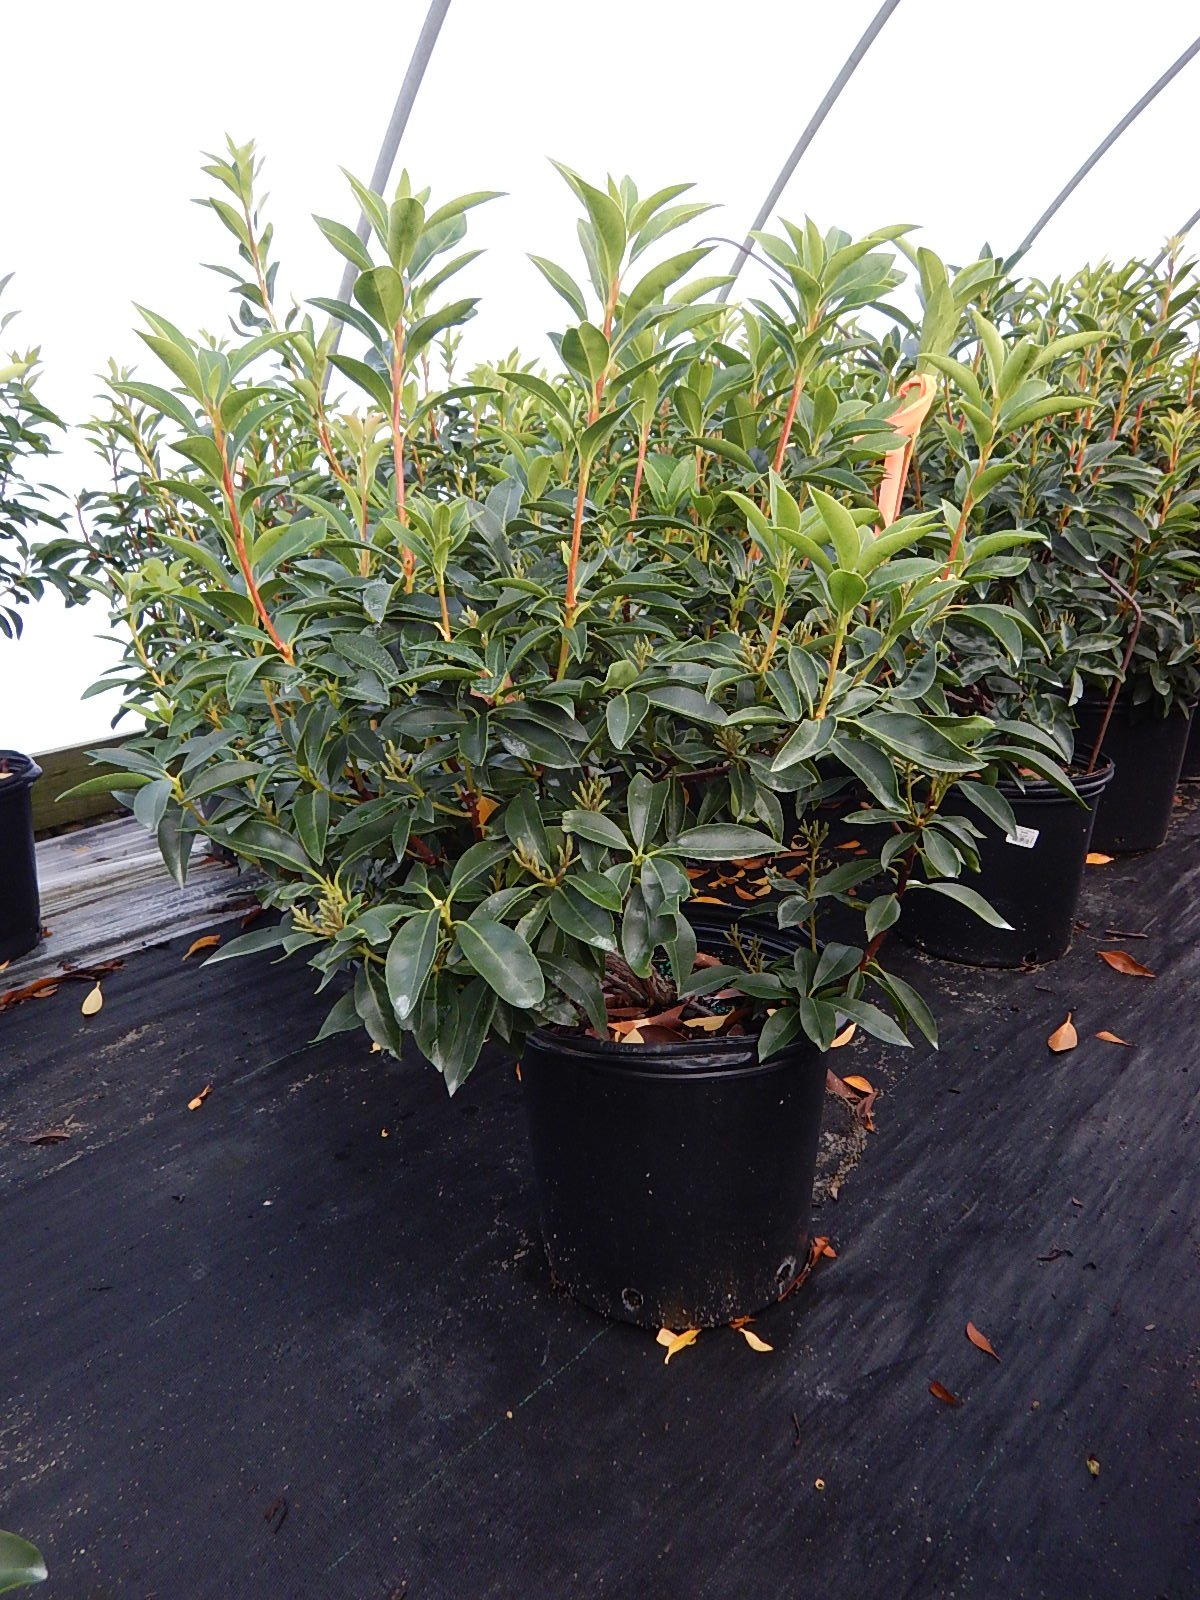 Kalmia lat. 'Sarah' (Mountain Laurel) Evergreen, pinkish-red flowers, #3 - Size Container by Green Promise Farms (Image #4)